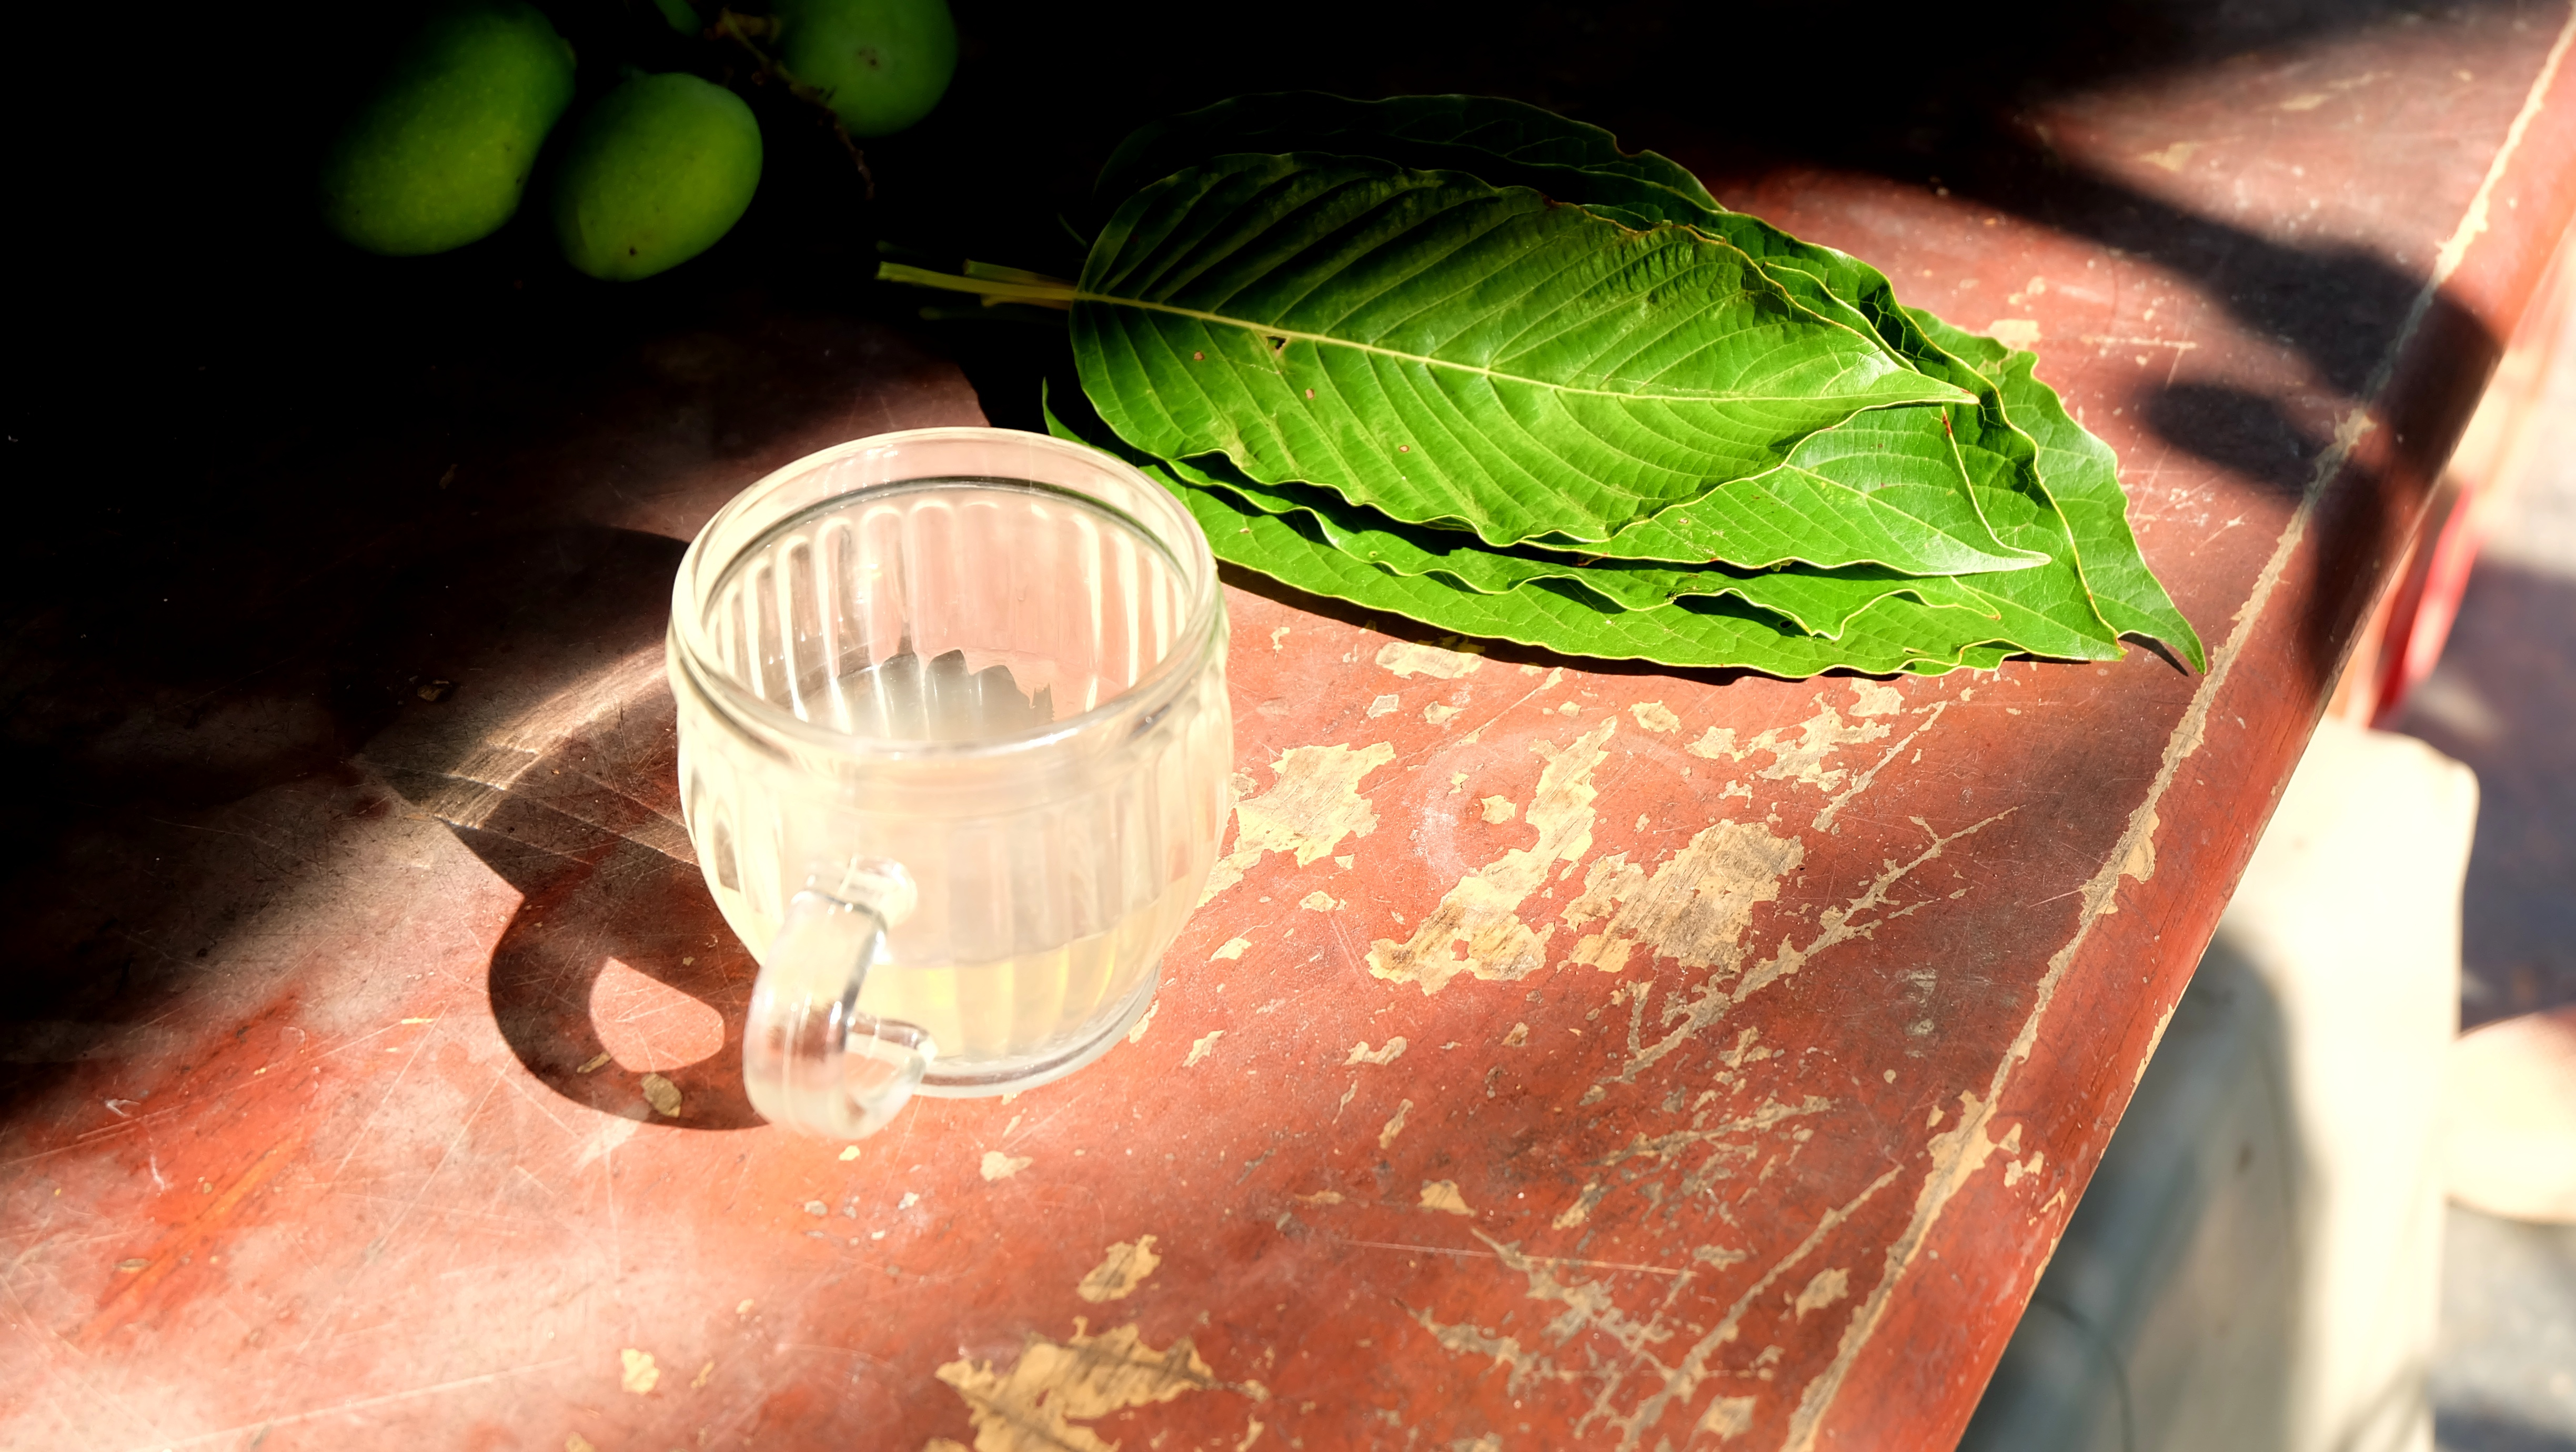 Does Kratom Tea Help With Anxiety, Pain, and Opiate Withdrawal?